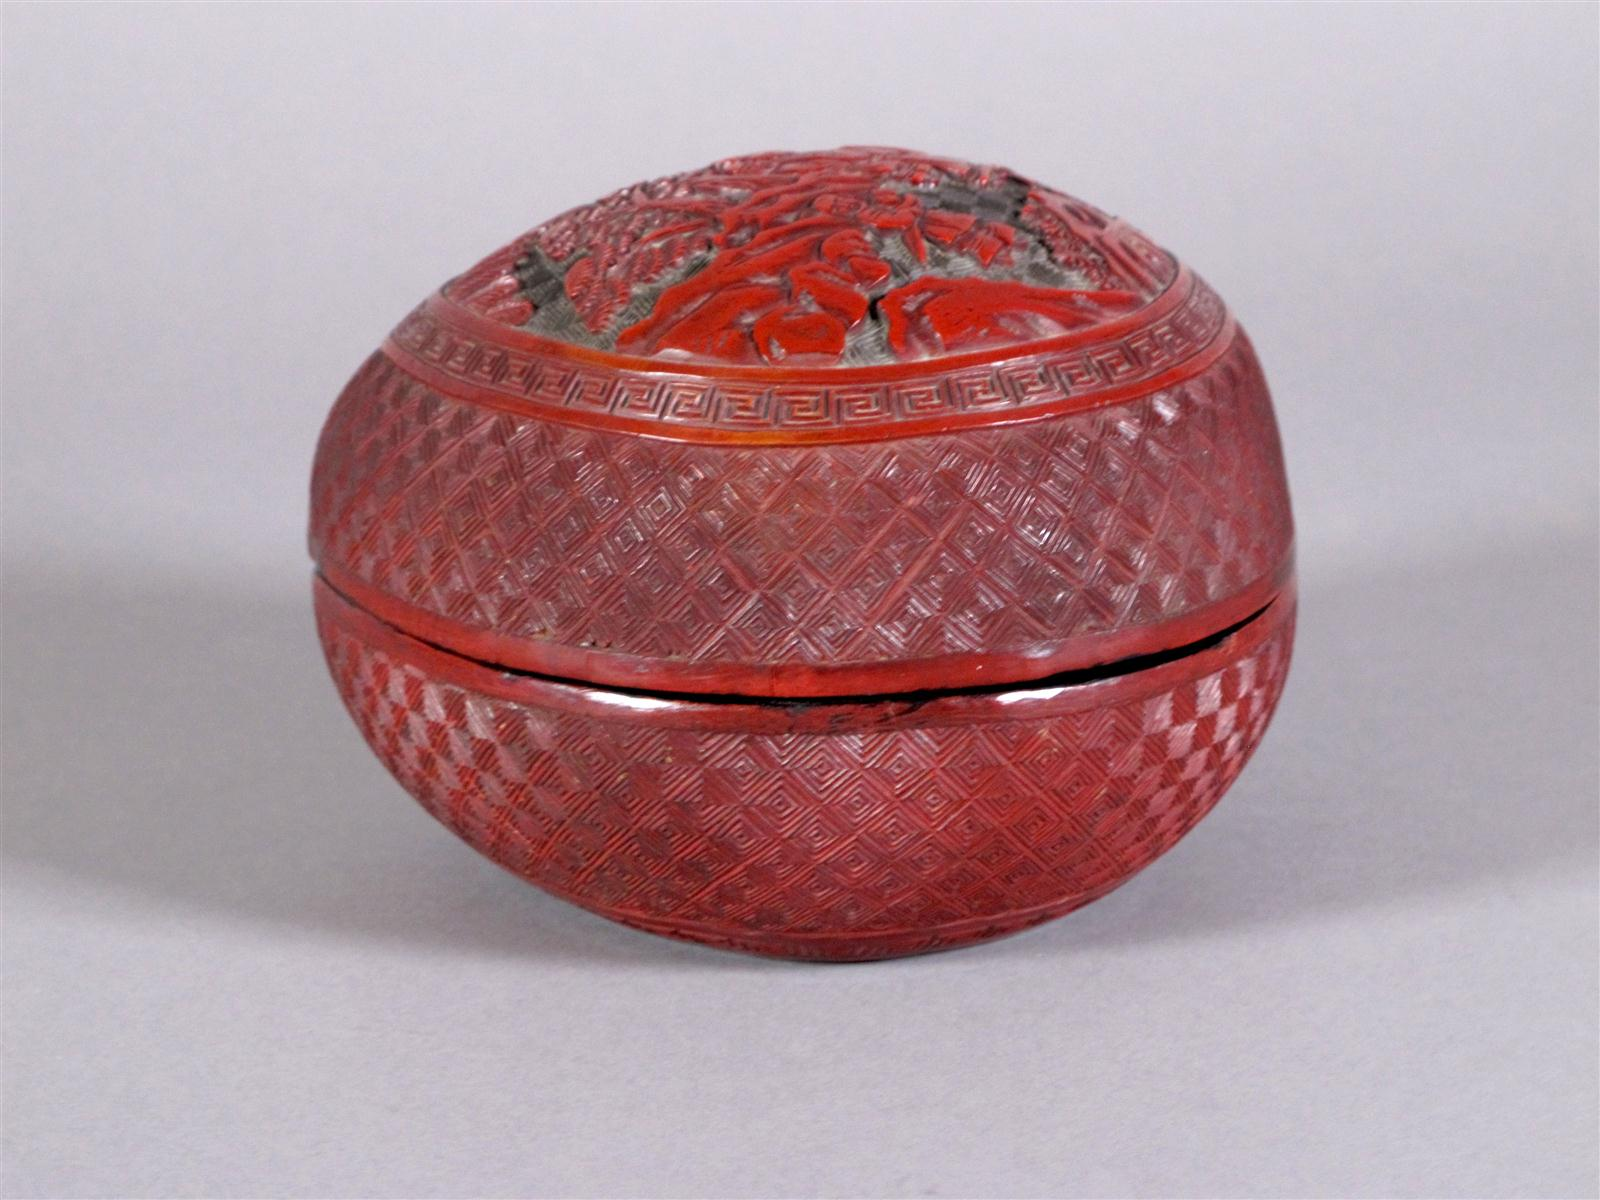 CHINA box in red lacquer-like longevity fishing, scholar decor and servants in a landscape